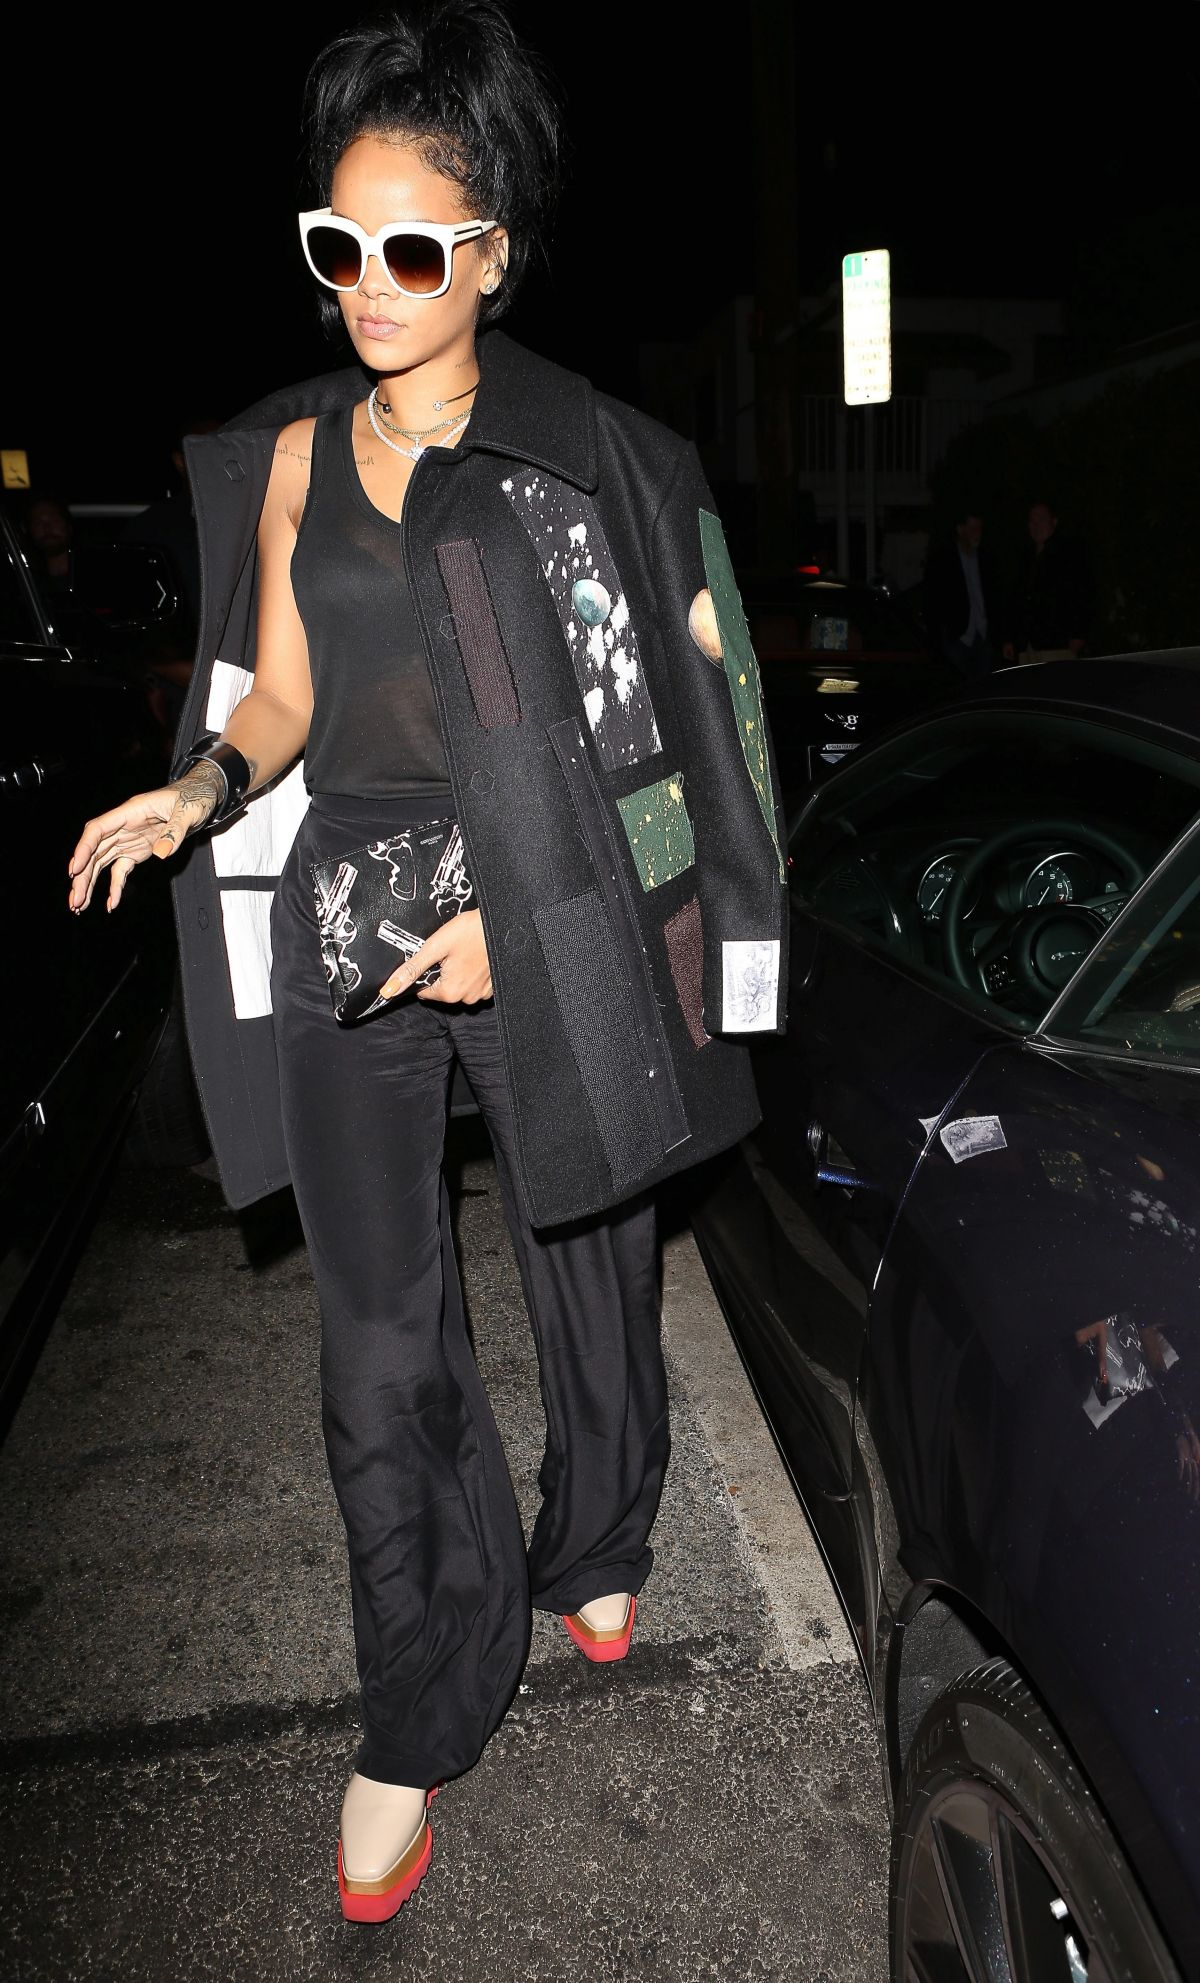 rihanna-getting-at-giorgio-baldi-in-santa-monica_10